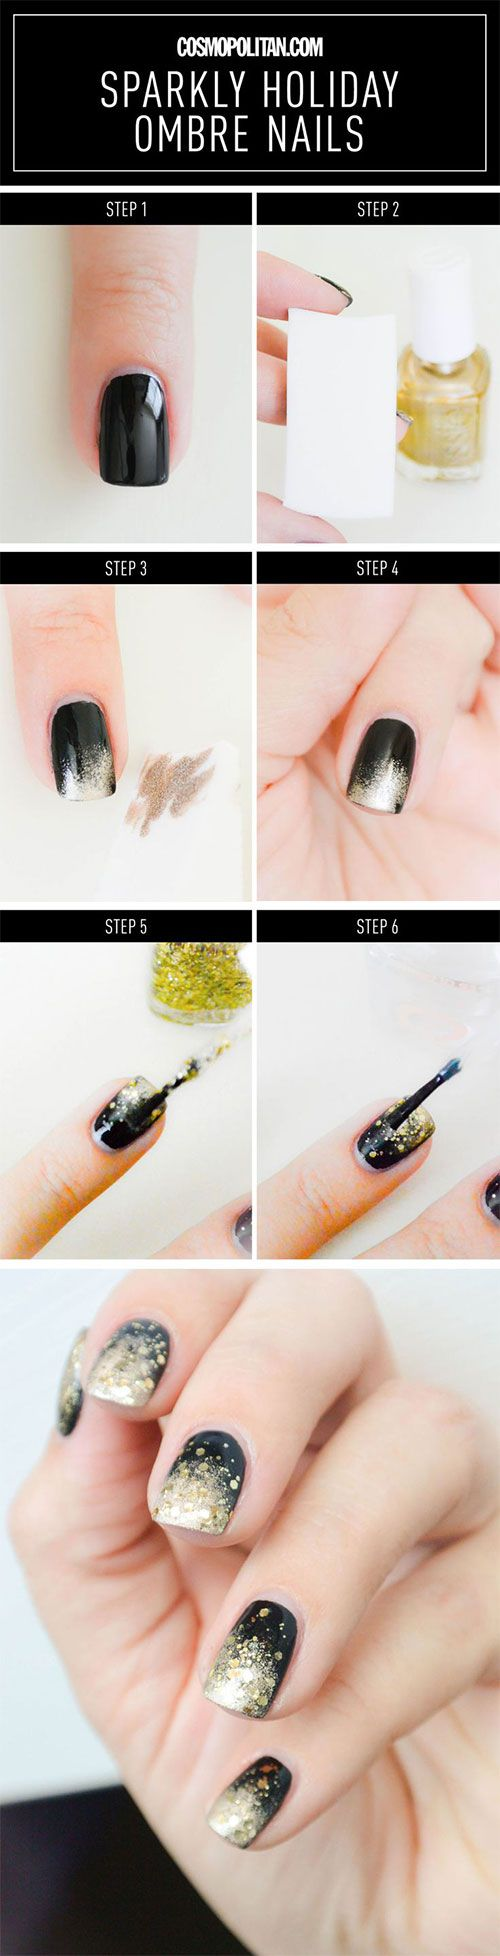 Step-By-Step-Happy-New-Year-Nail-Art-Tutorials-For-Beginners-2015 ...